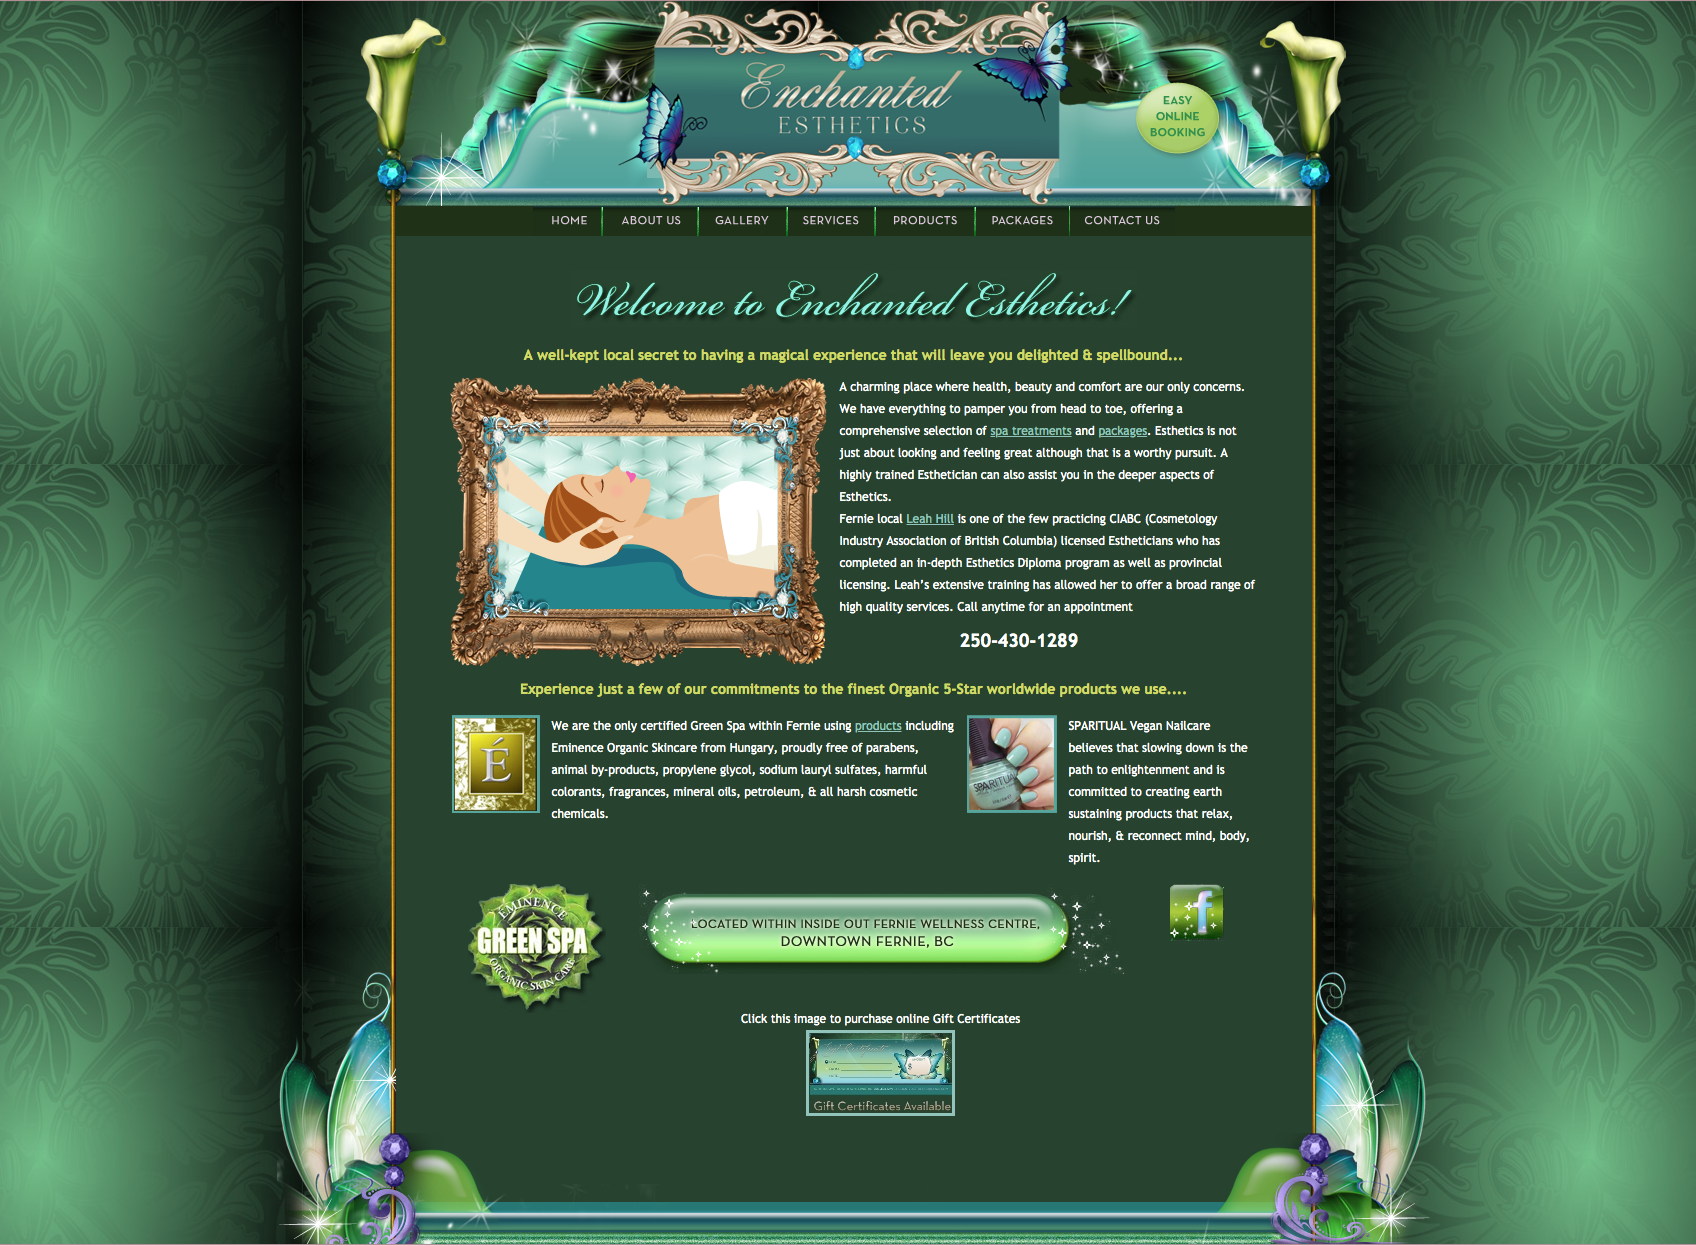 Enchanted Esthetics Website Design